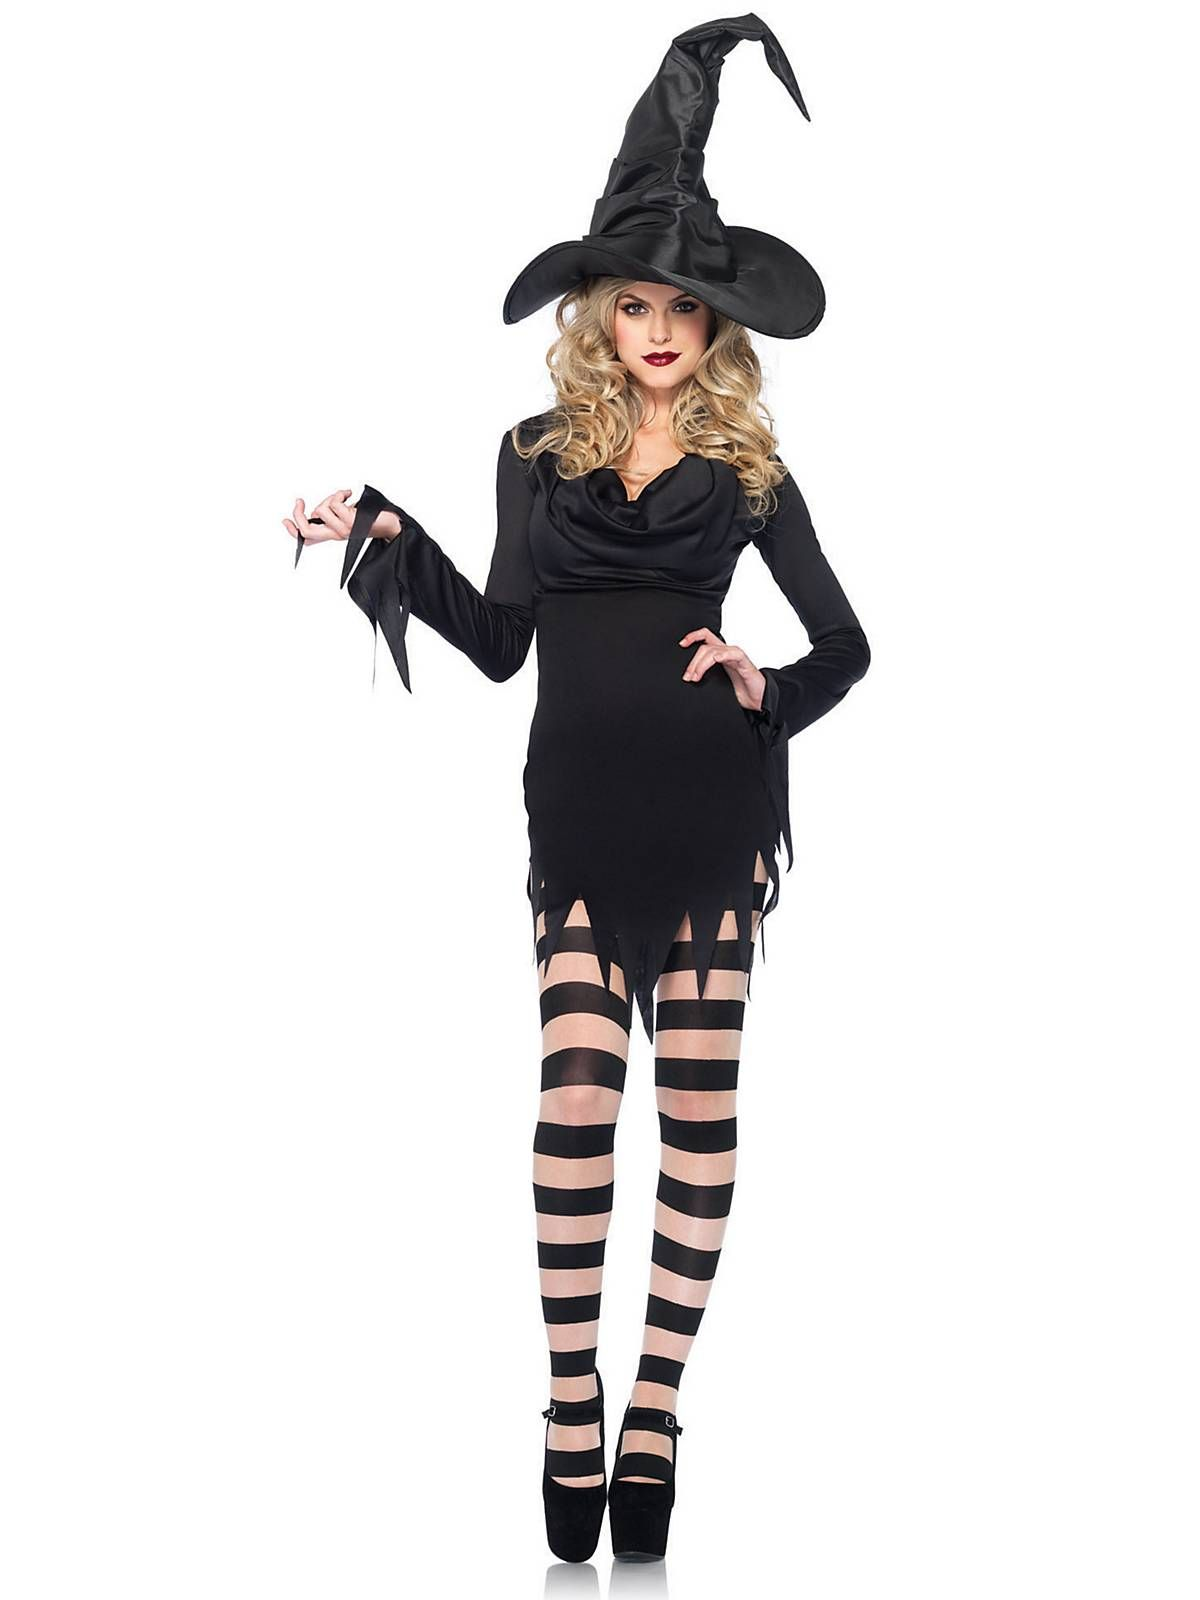 Y Tattered Witch Dress Costume Womens Costumes